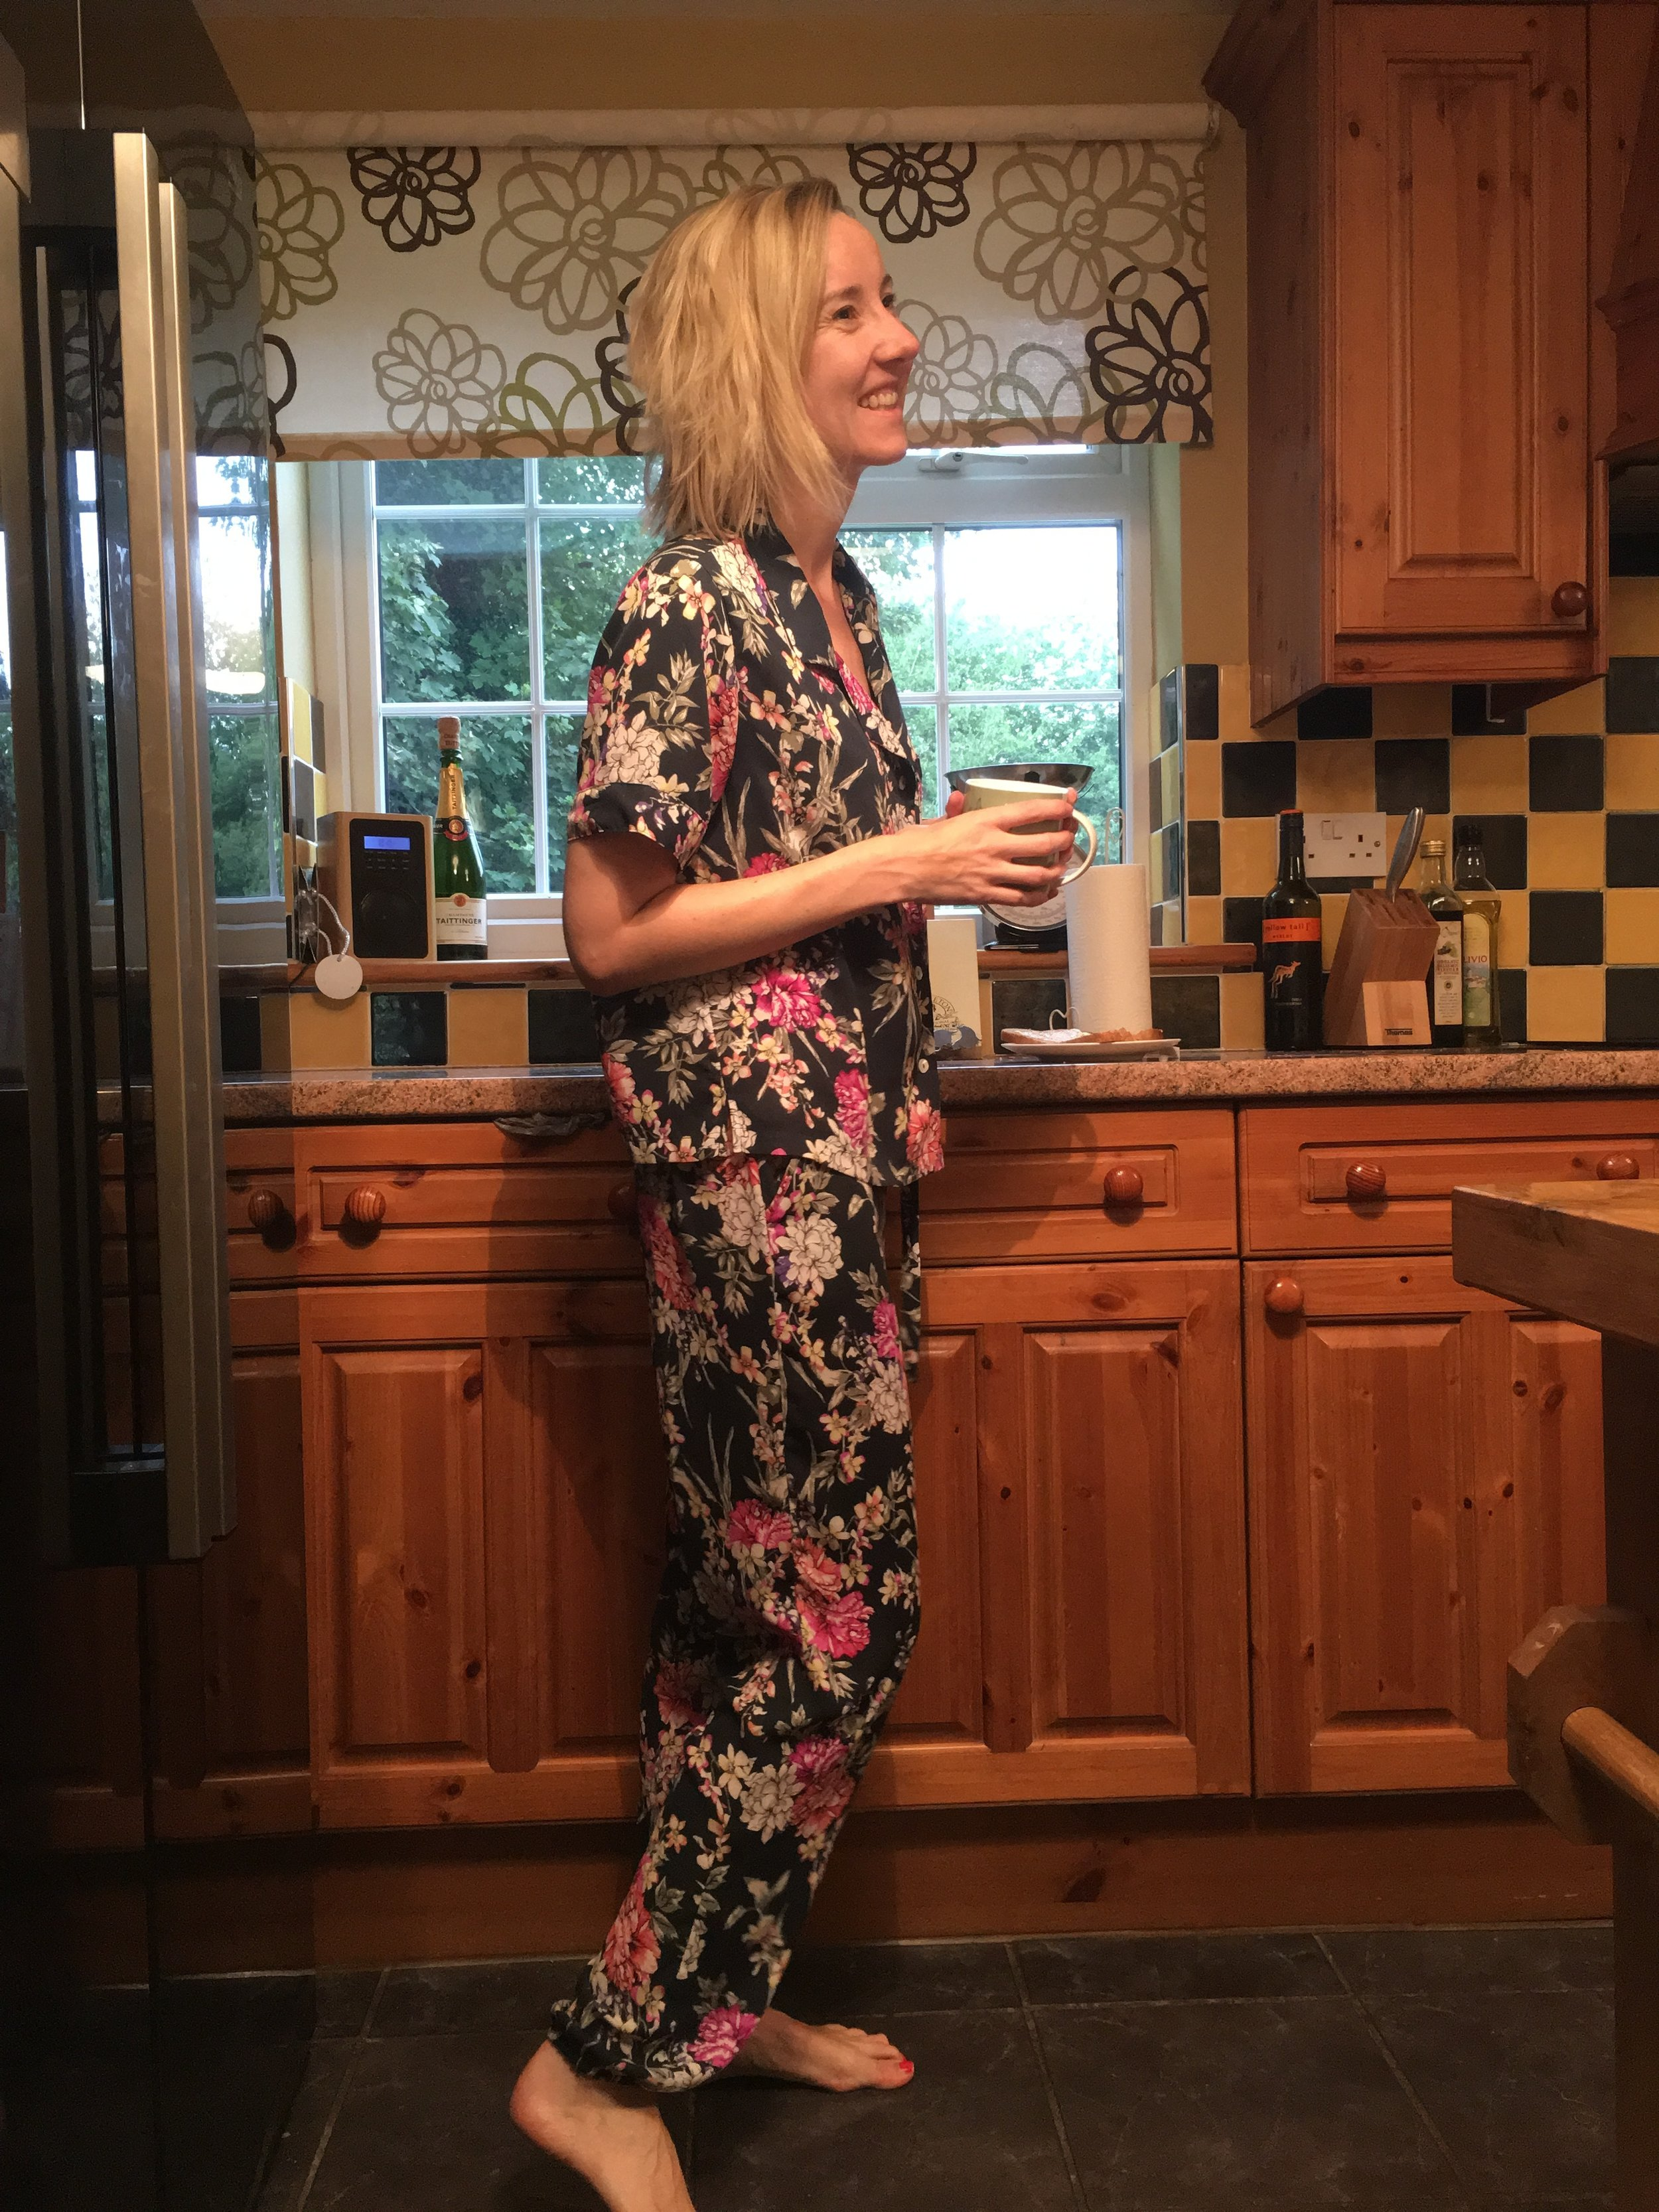 The perfect pair of pj's from marks and spencer